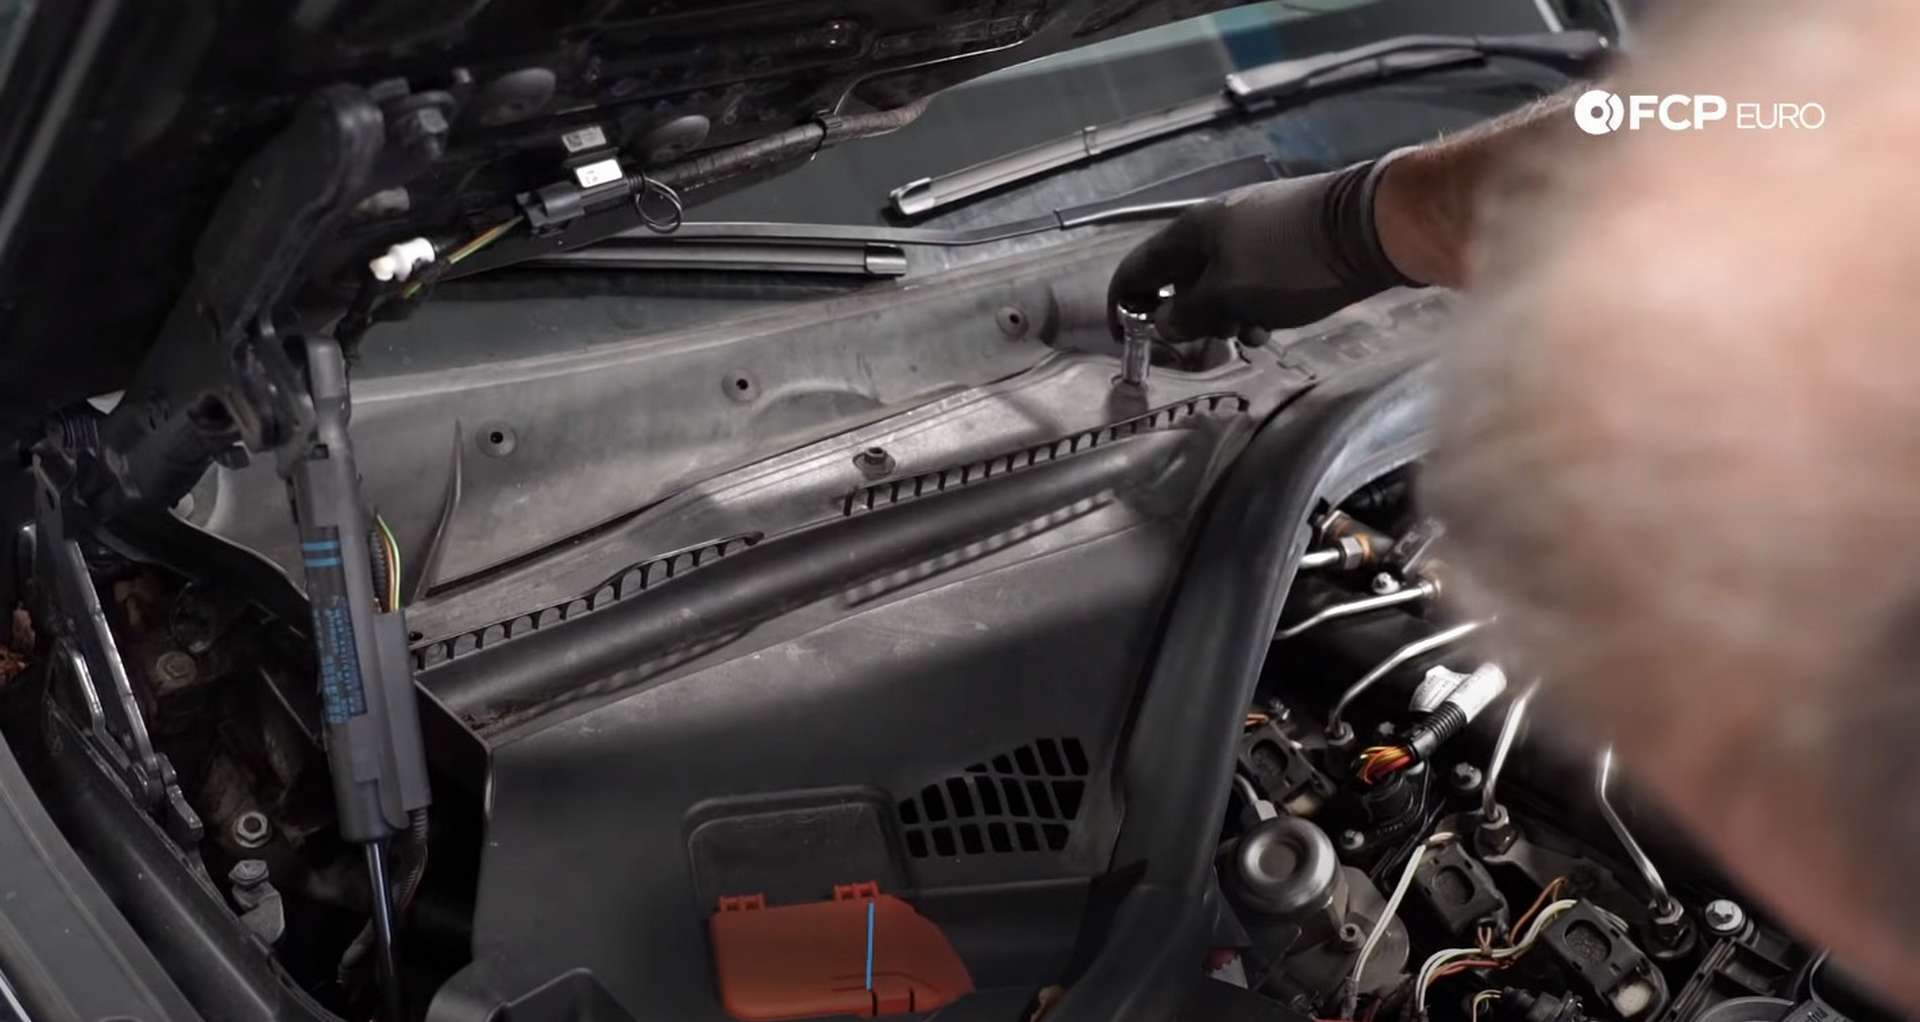 DIY BMW F30 High-Pressure Fuel Pump Replacement turning the cowl's fasteners